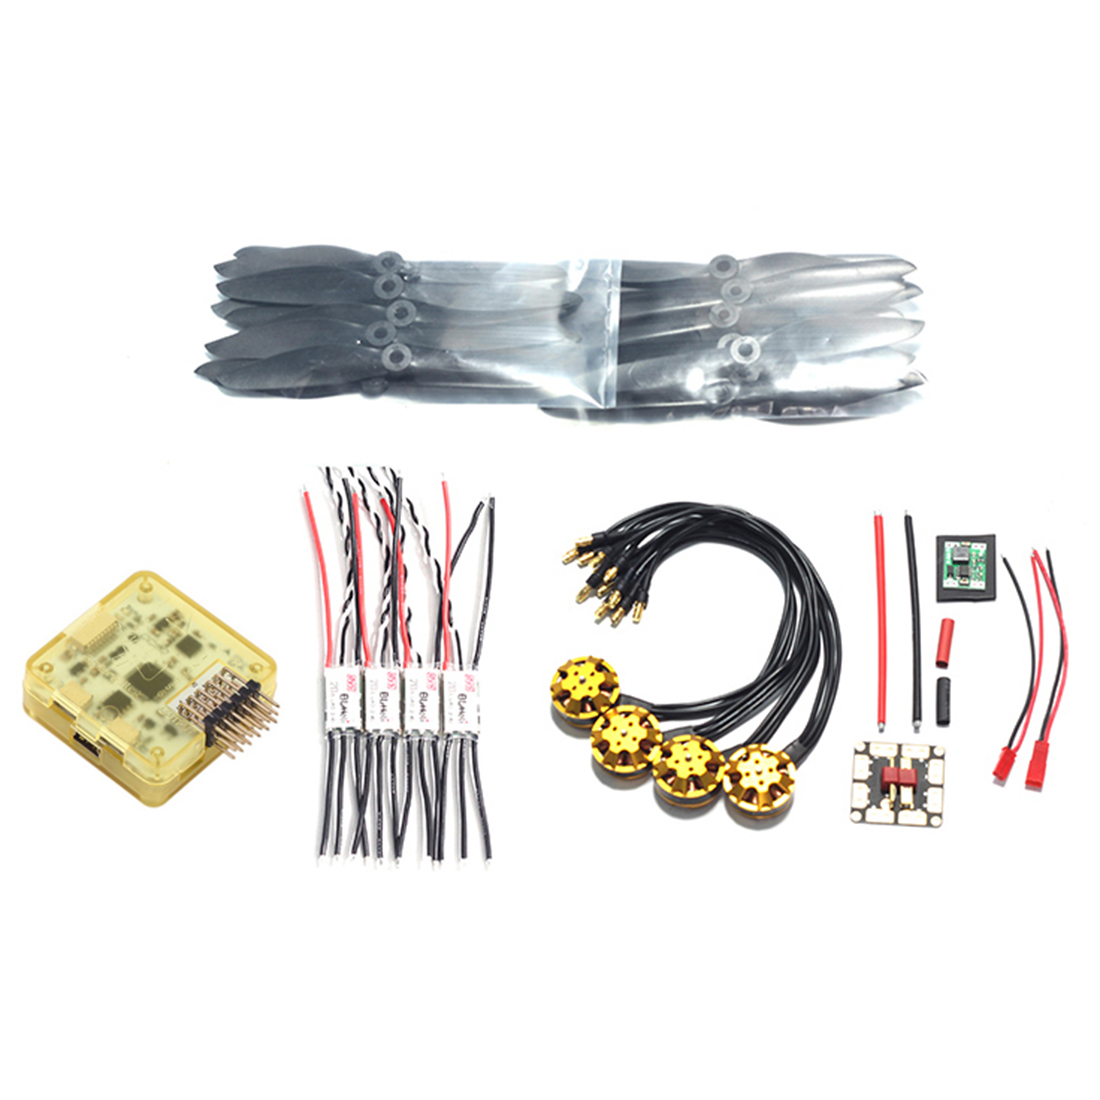 cc3d flight controller 2204 2400kv motor 6040 propeller blhli 20a esc 5v step down module 35 35 lay plate 14awg silicon cable in drone accessories kits  [ 1100 x 1100 Pixel ]